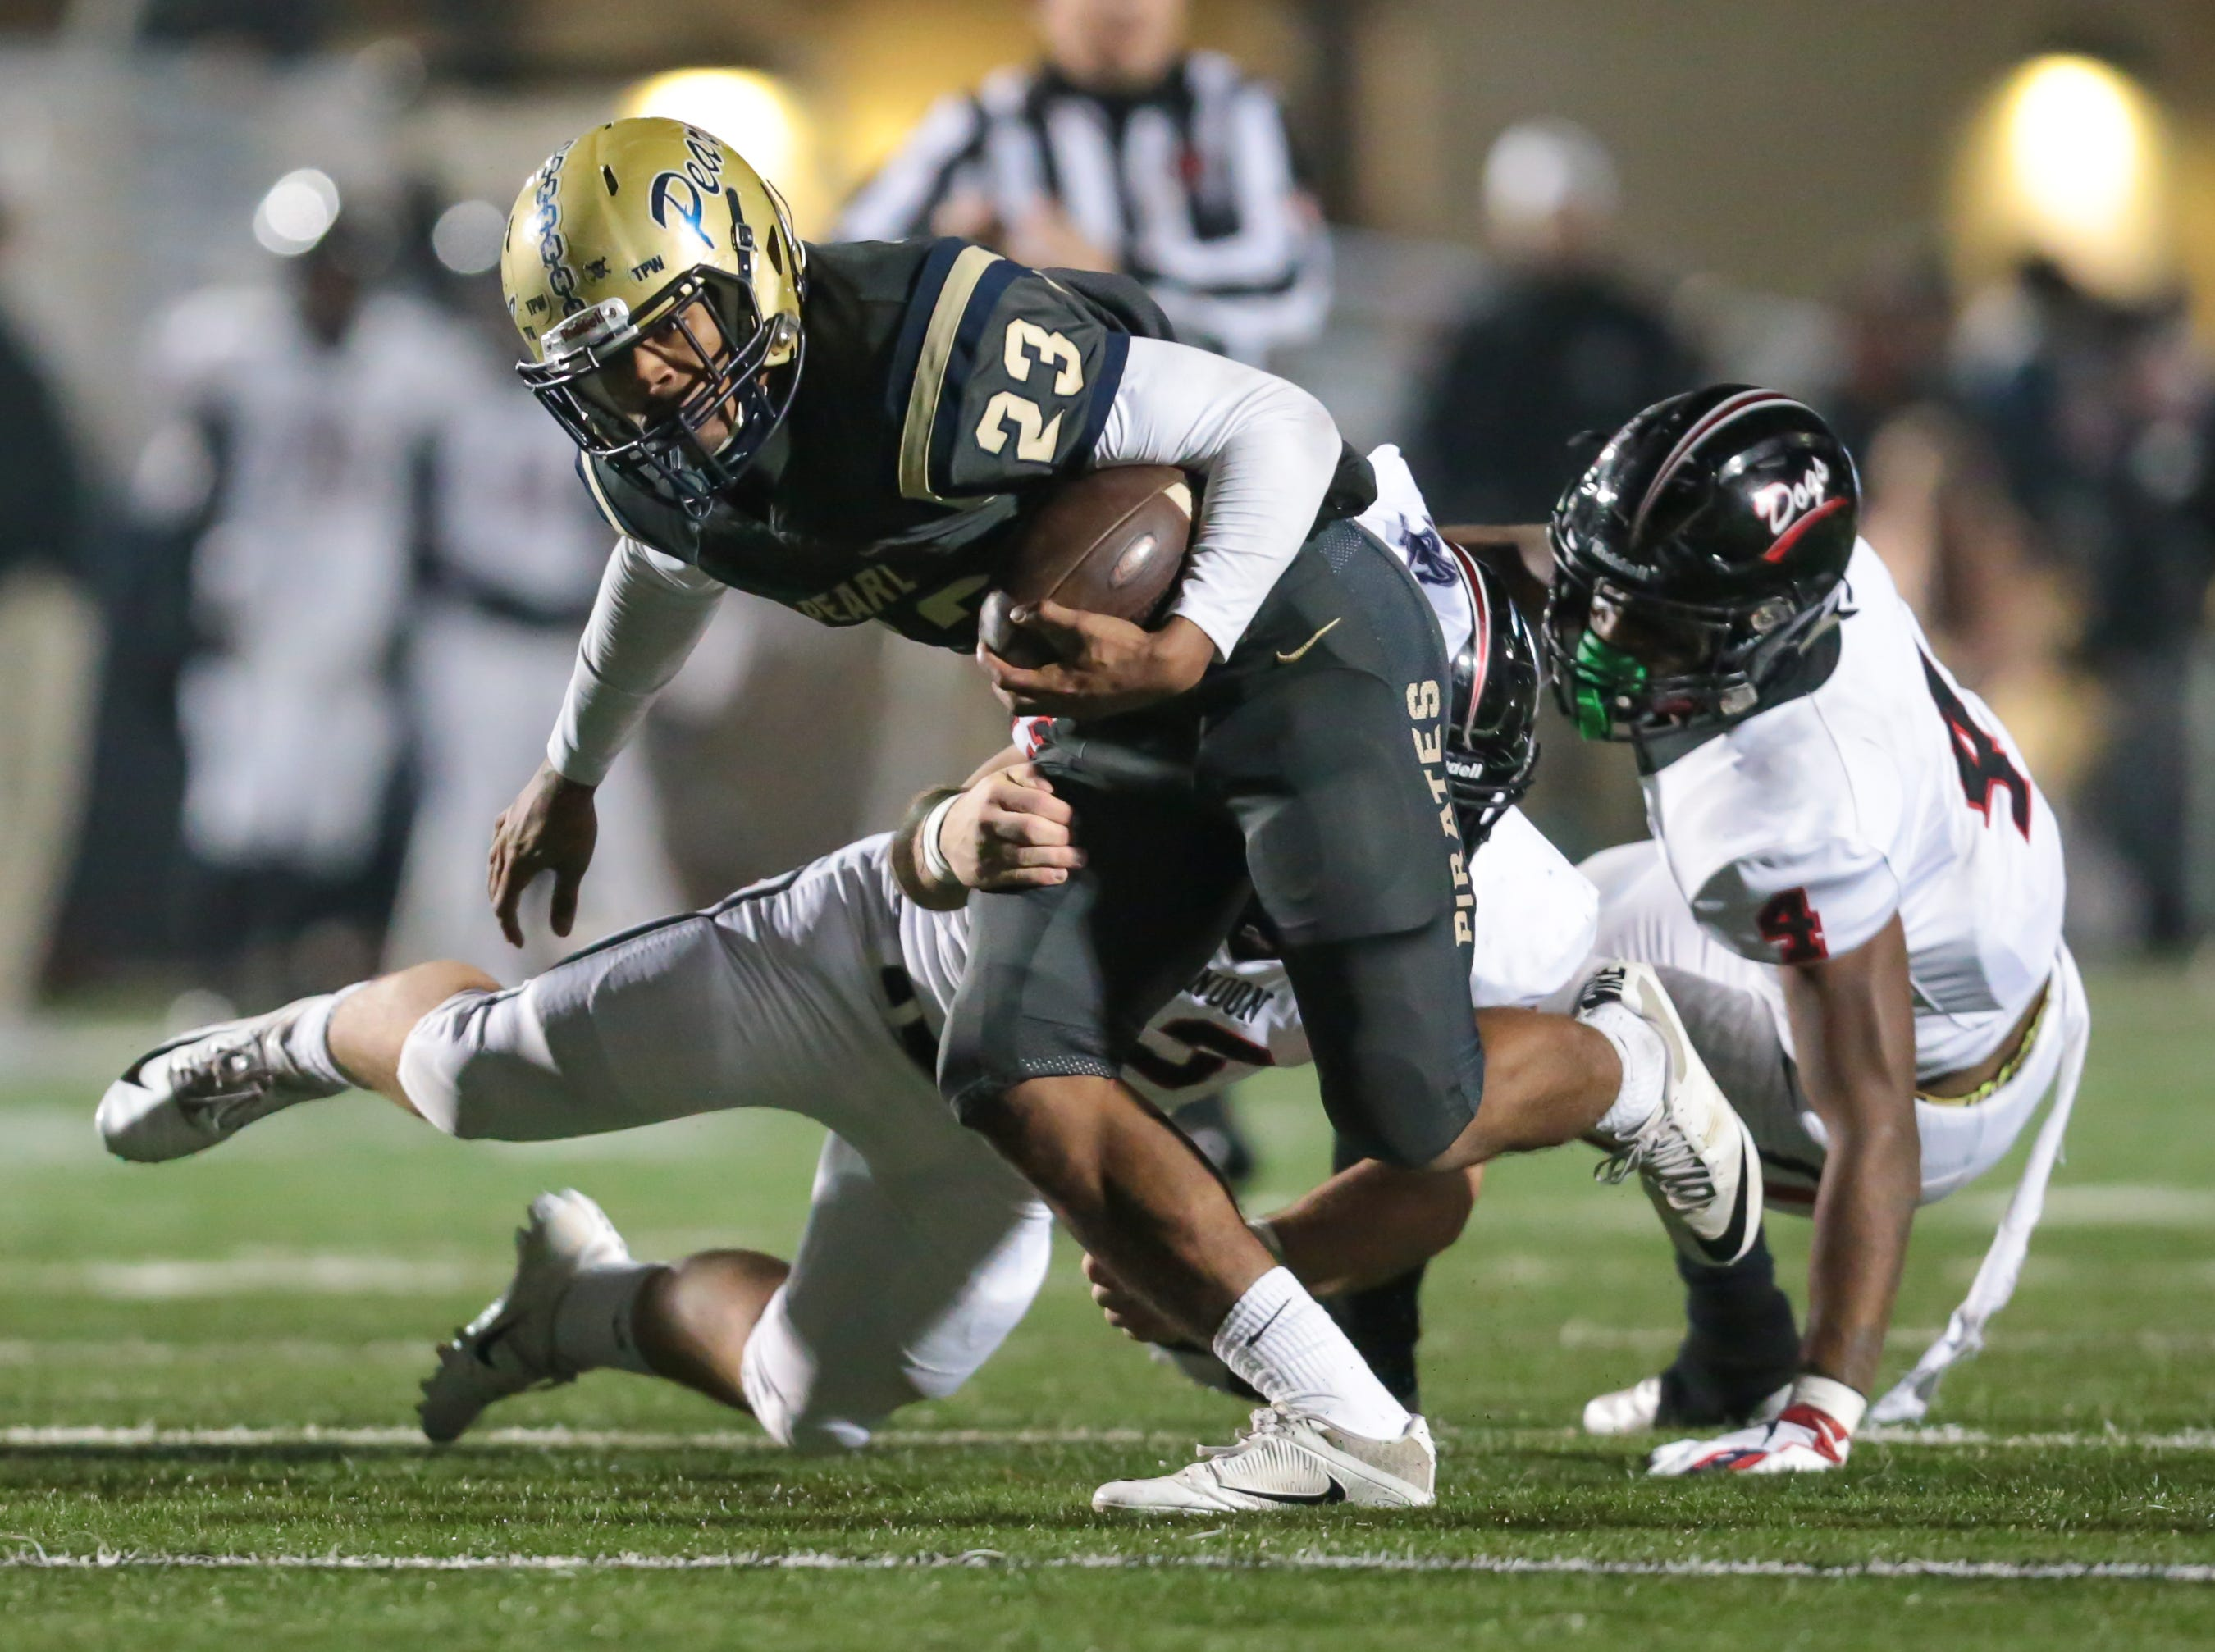 Pearl High School's Kenyatta Harrell (23) breaks a tackle in the third quarter. Pearl played Brandon High School in an MHSAA Class 6A playoff game on Friday, November 16, 2018 at Brandon. Photo by Keith Warren